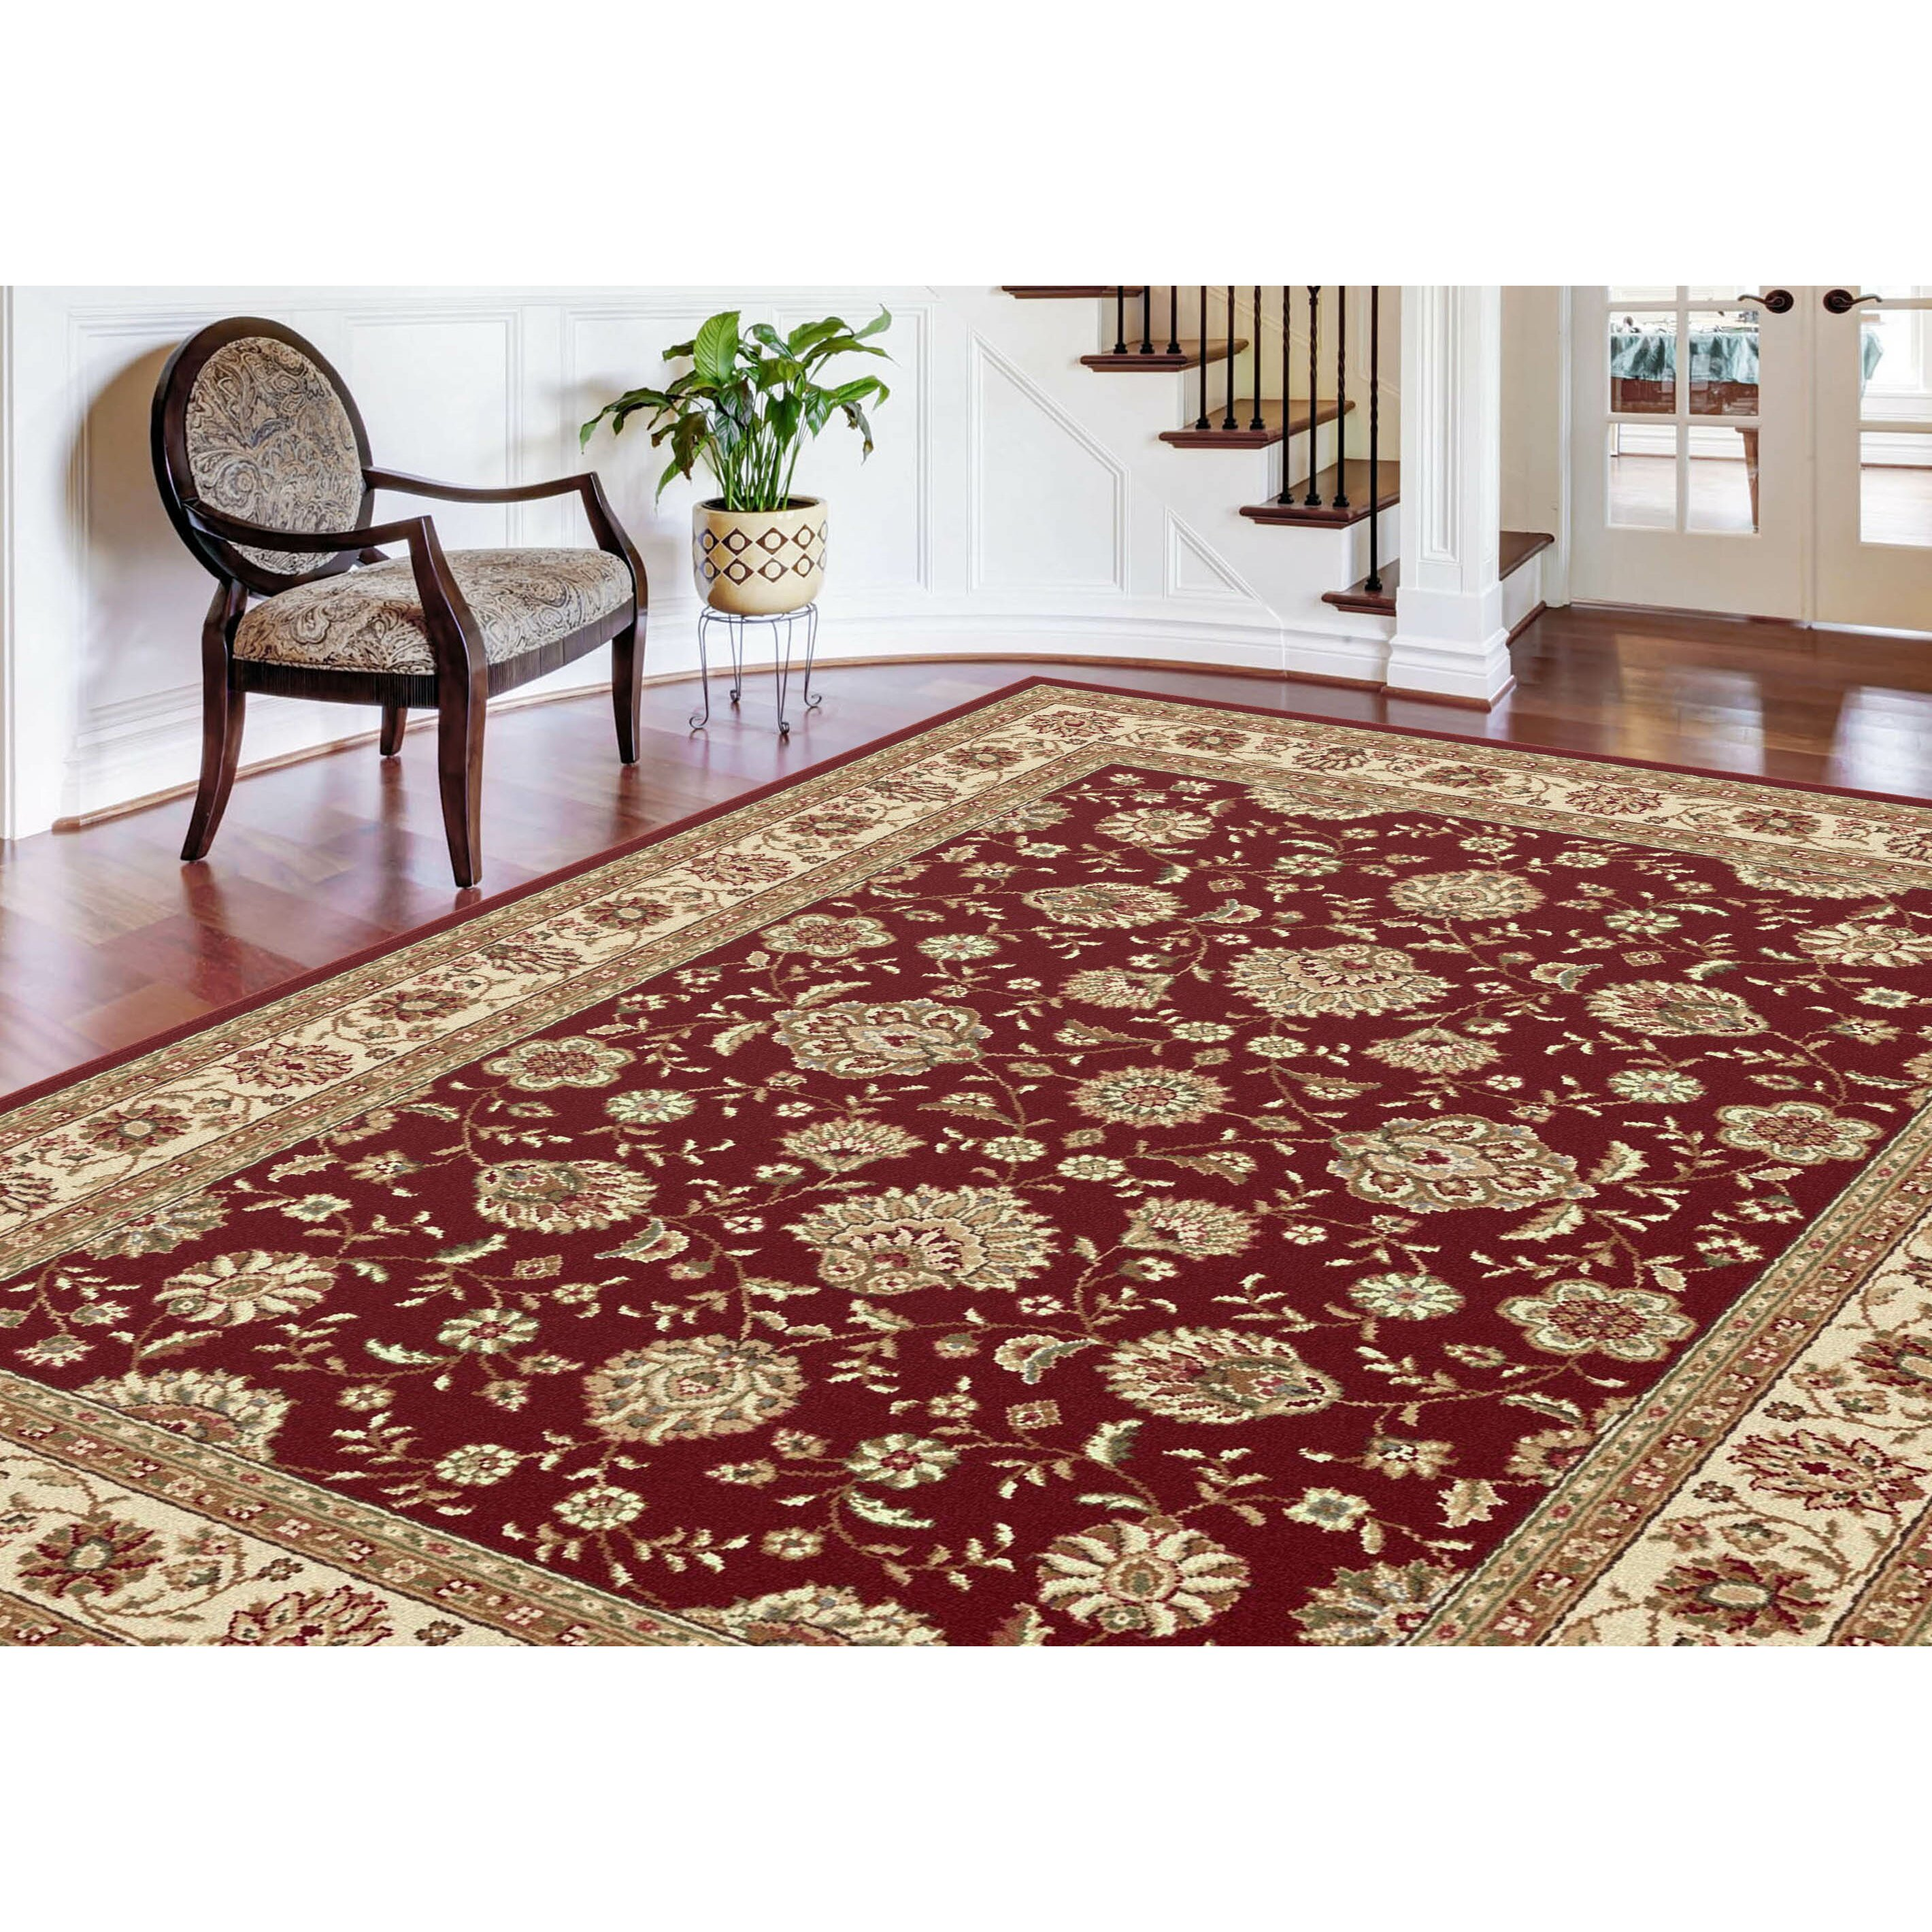 Litchford Red Area Rug